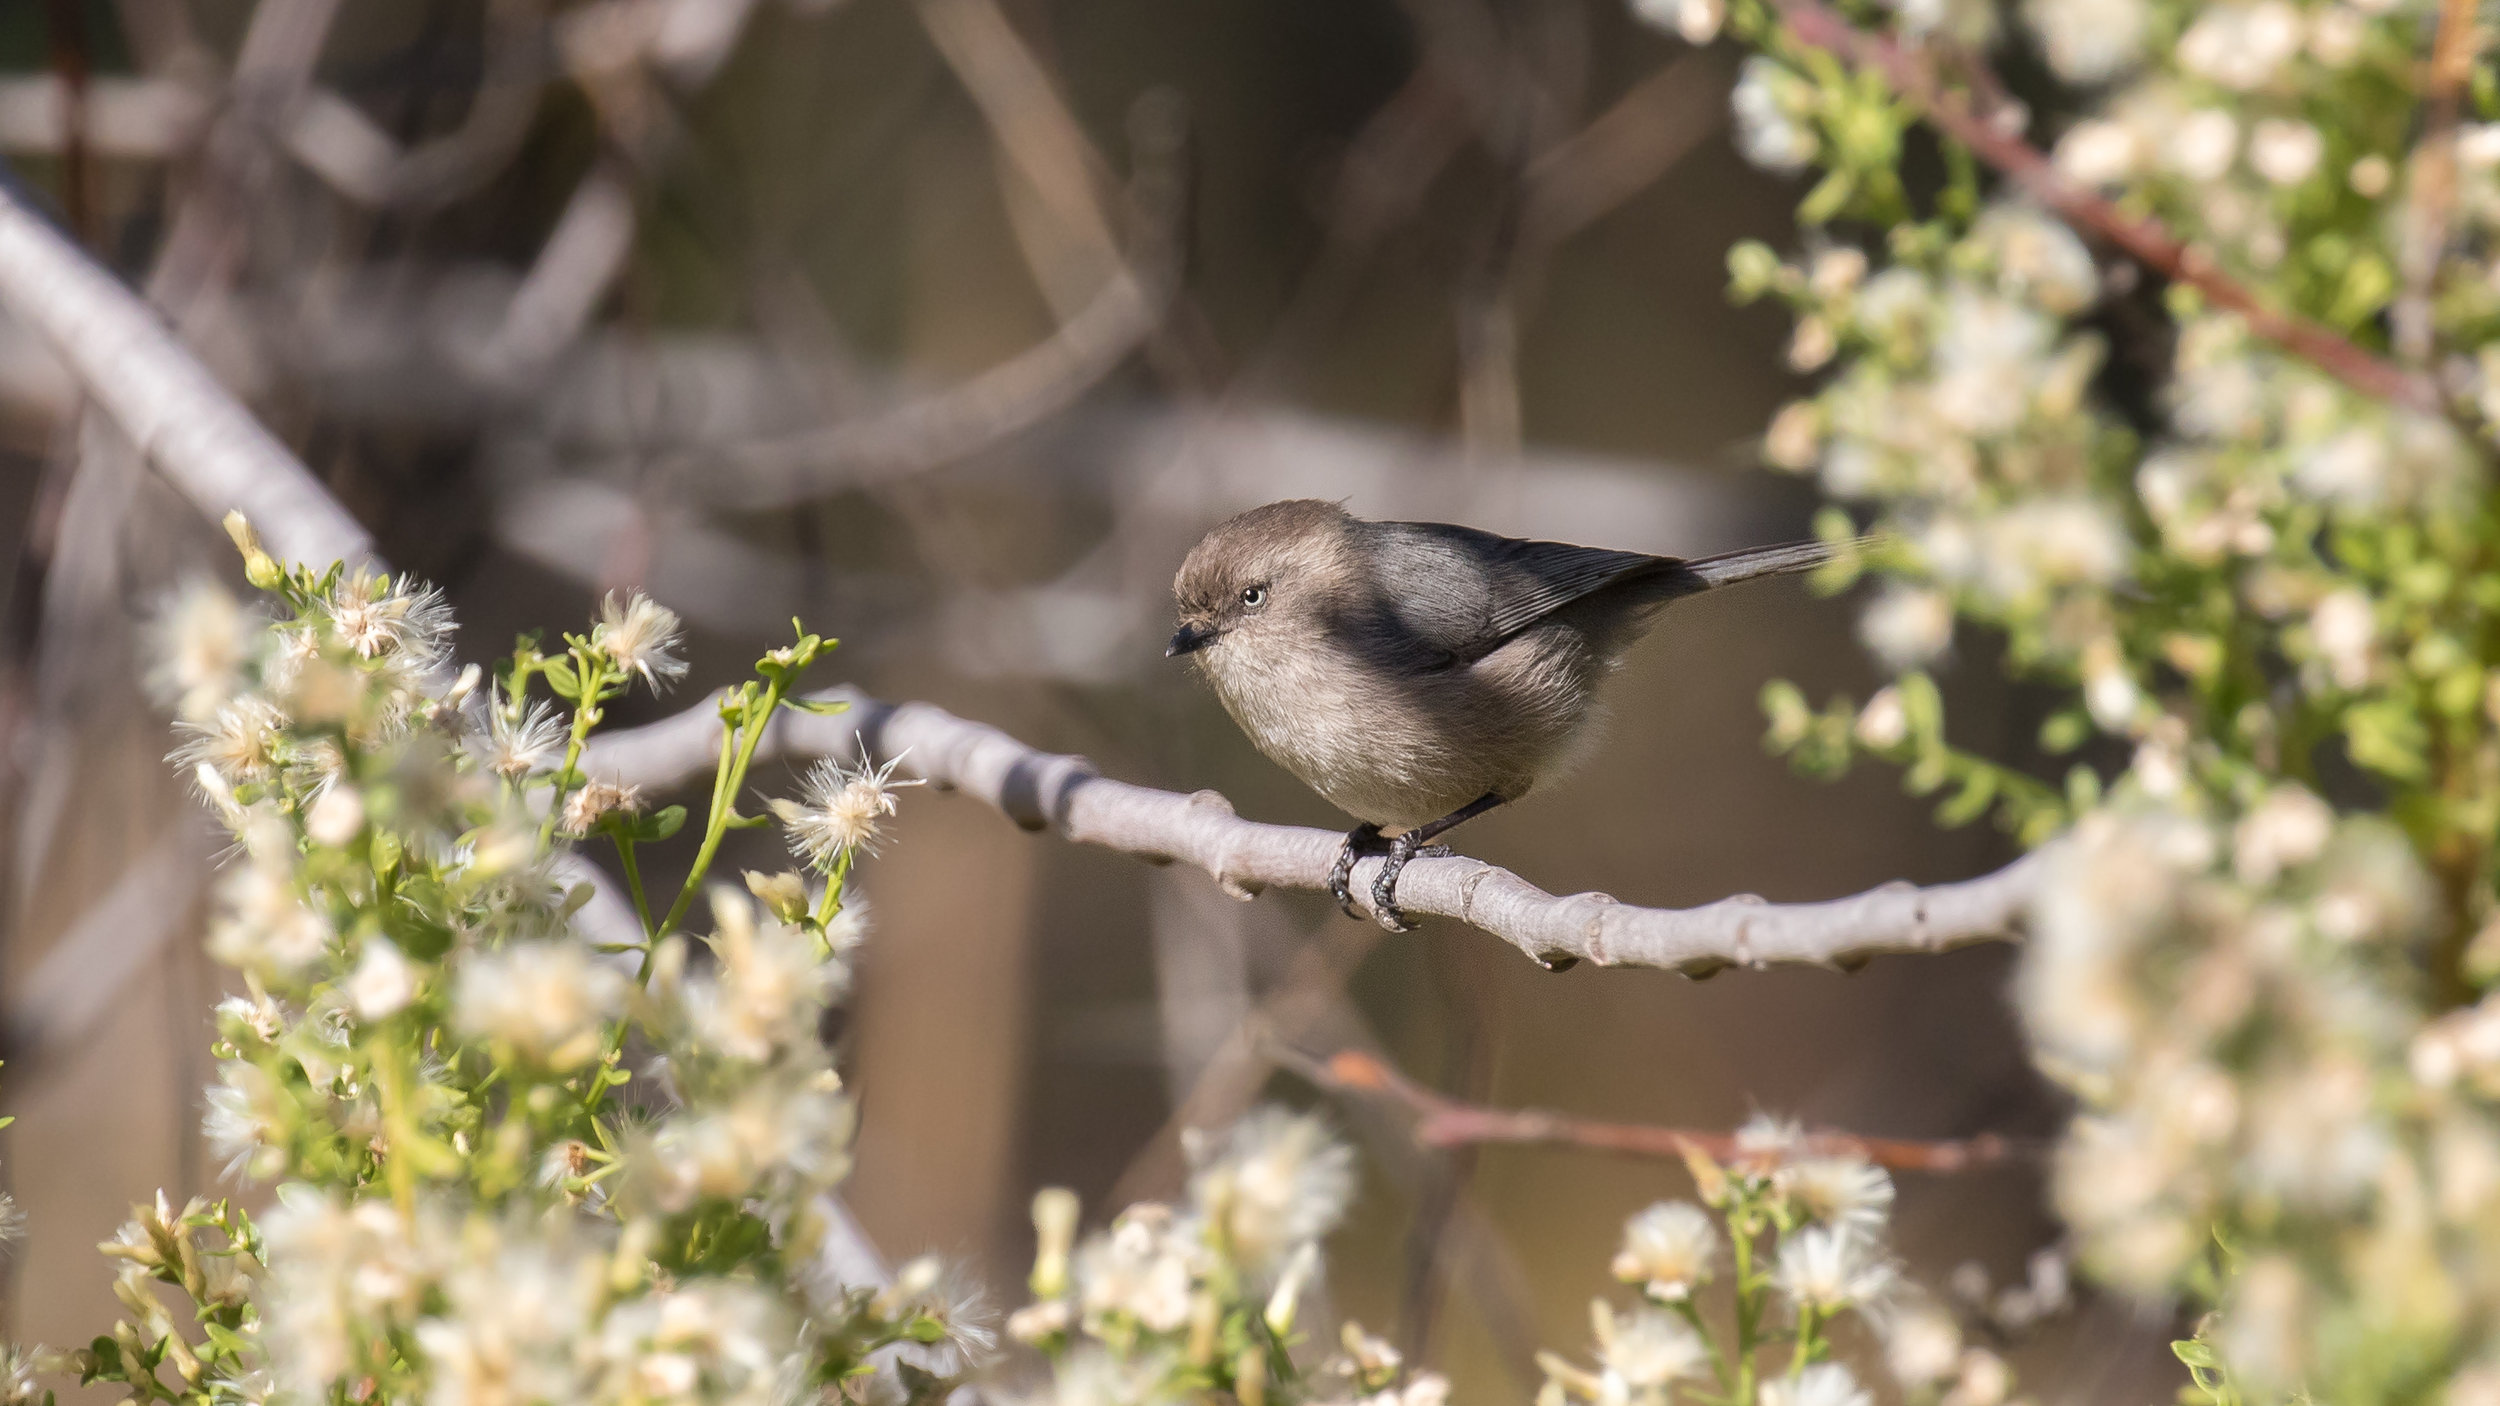 American Bushtit(Psaltriparus minimus) at Laguna Niguel Regional Park, United States. December 2015. Not baited. Not called in.